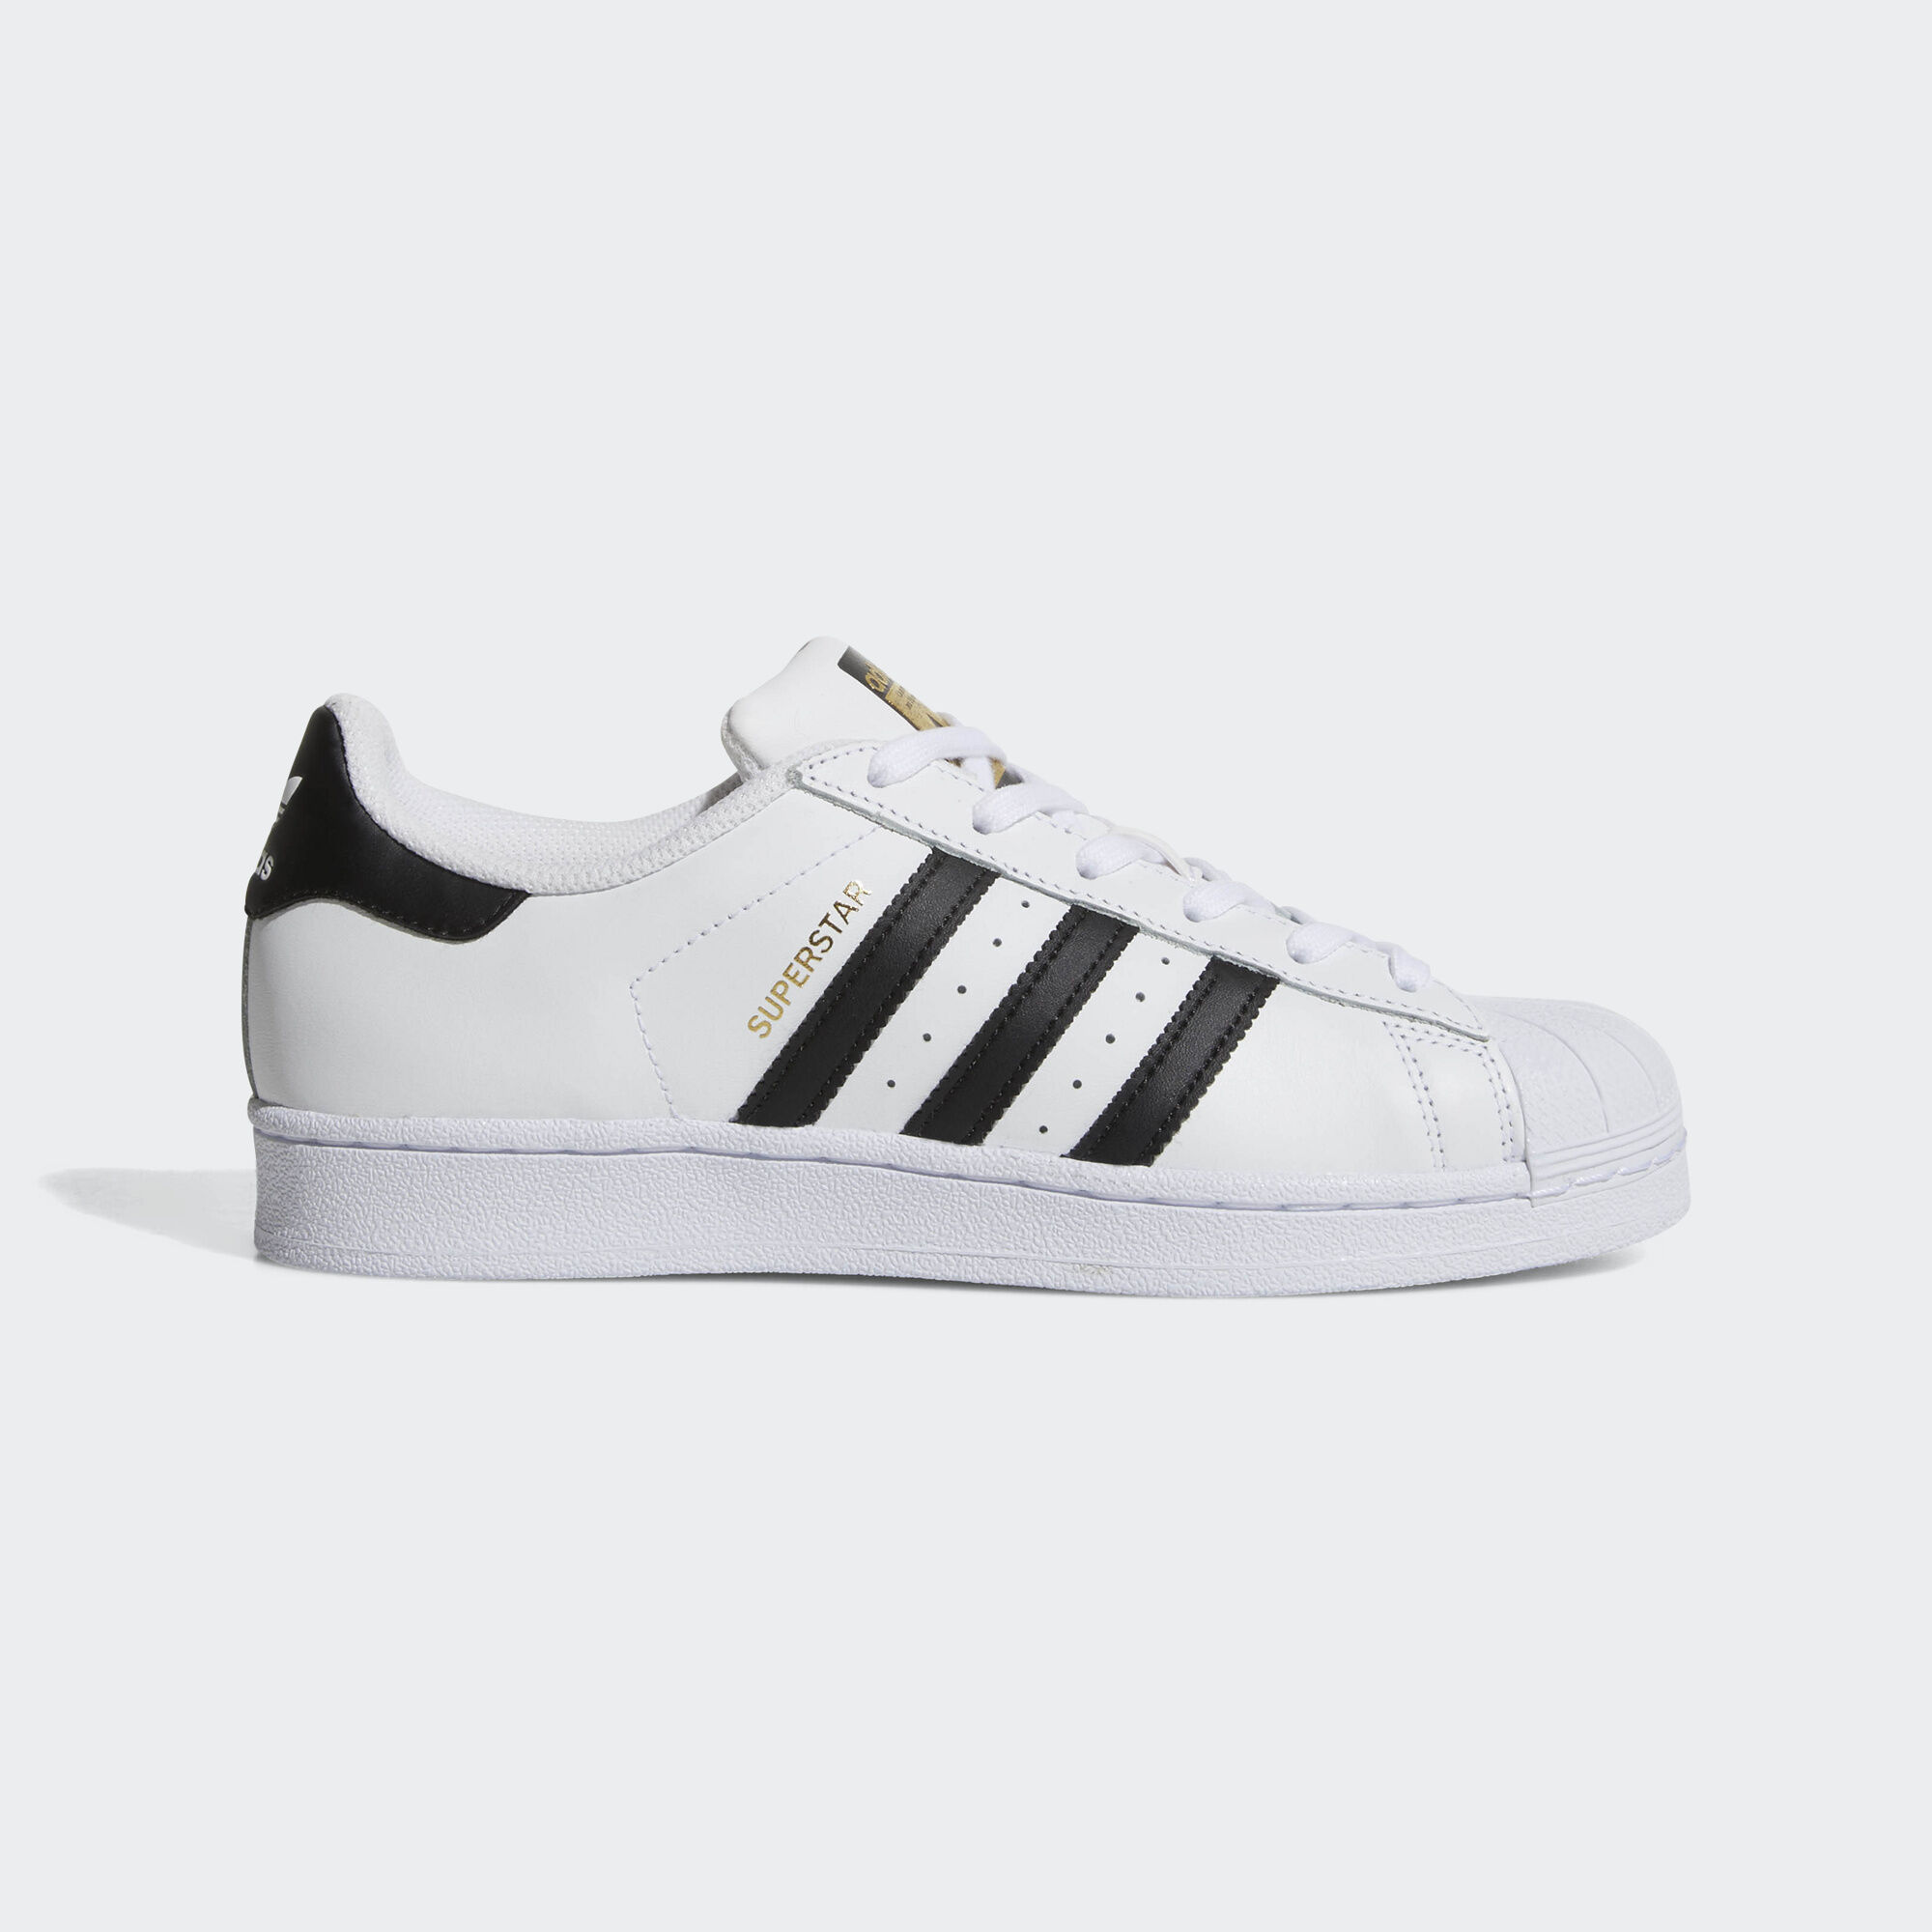 Adidas Superstar Black And White Womens